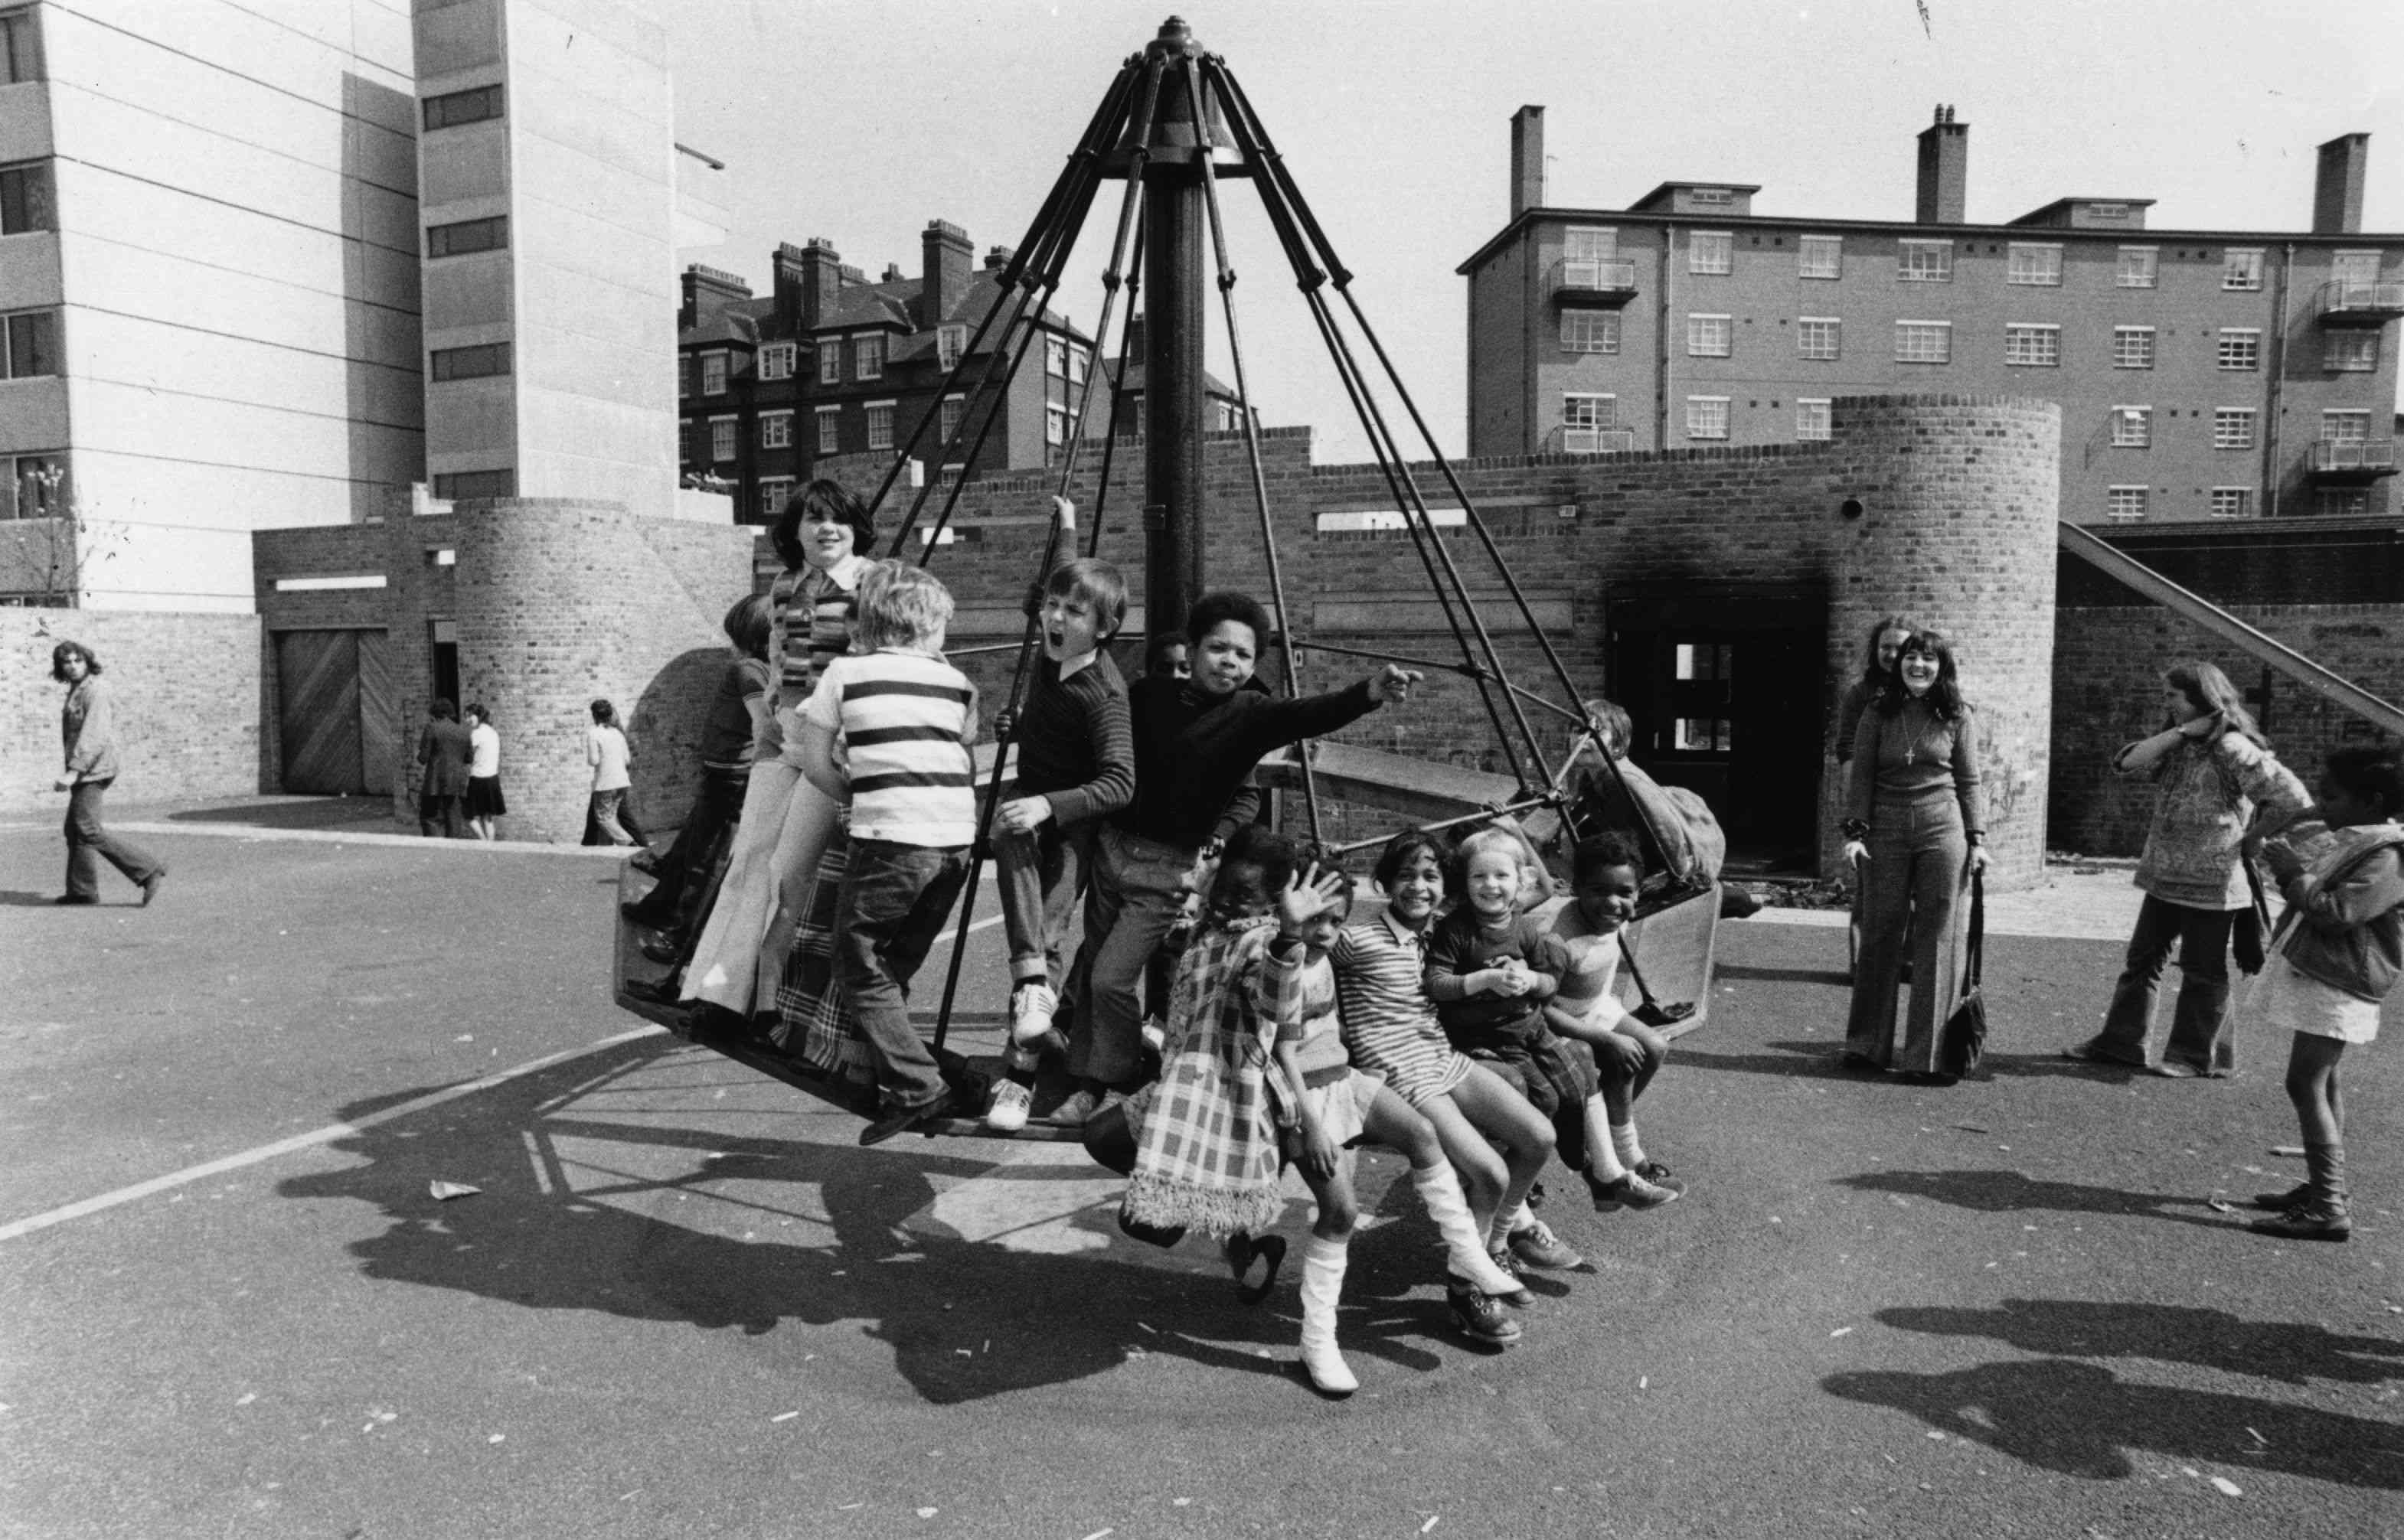 A London schoolyard in the 1970s